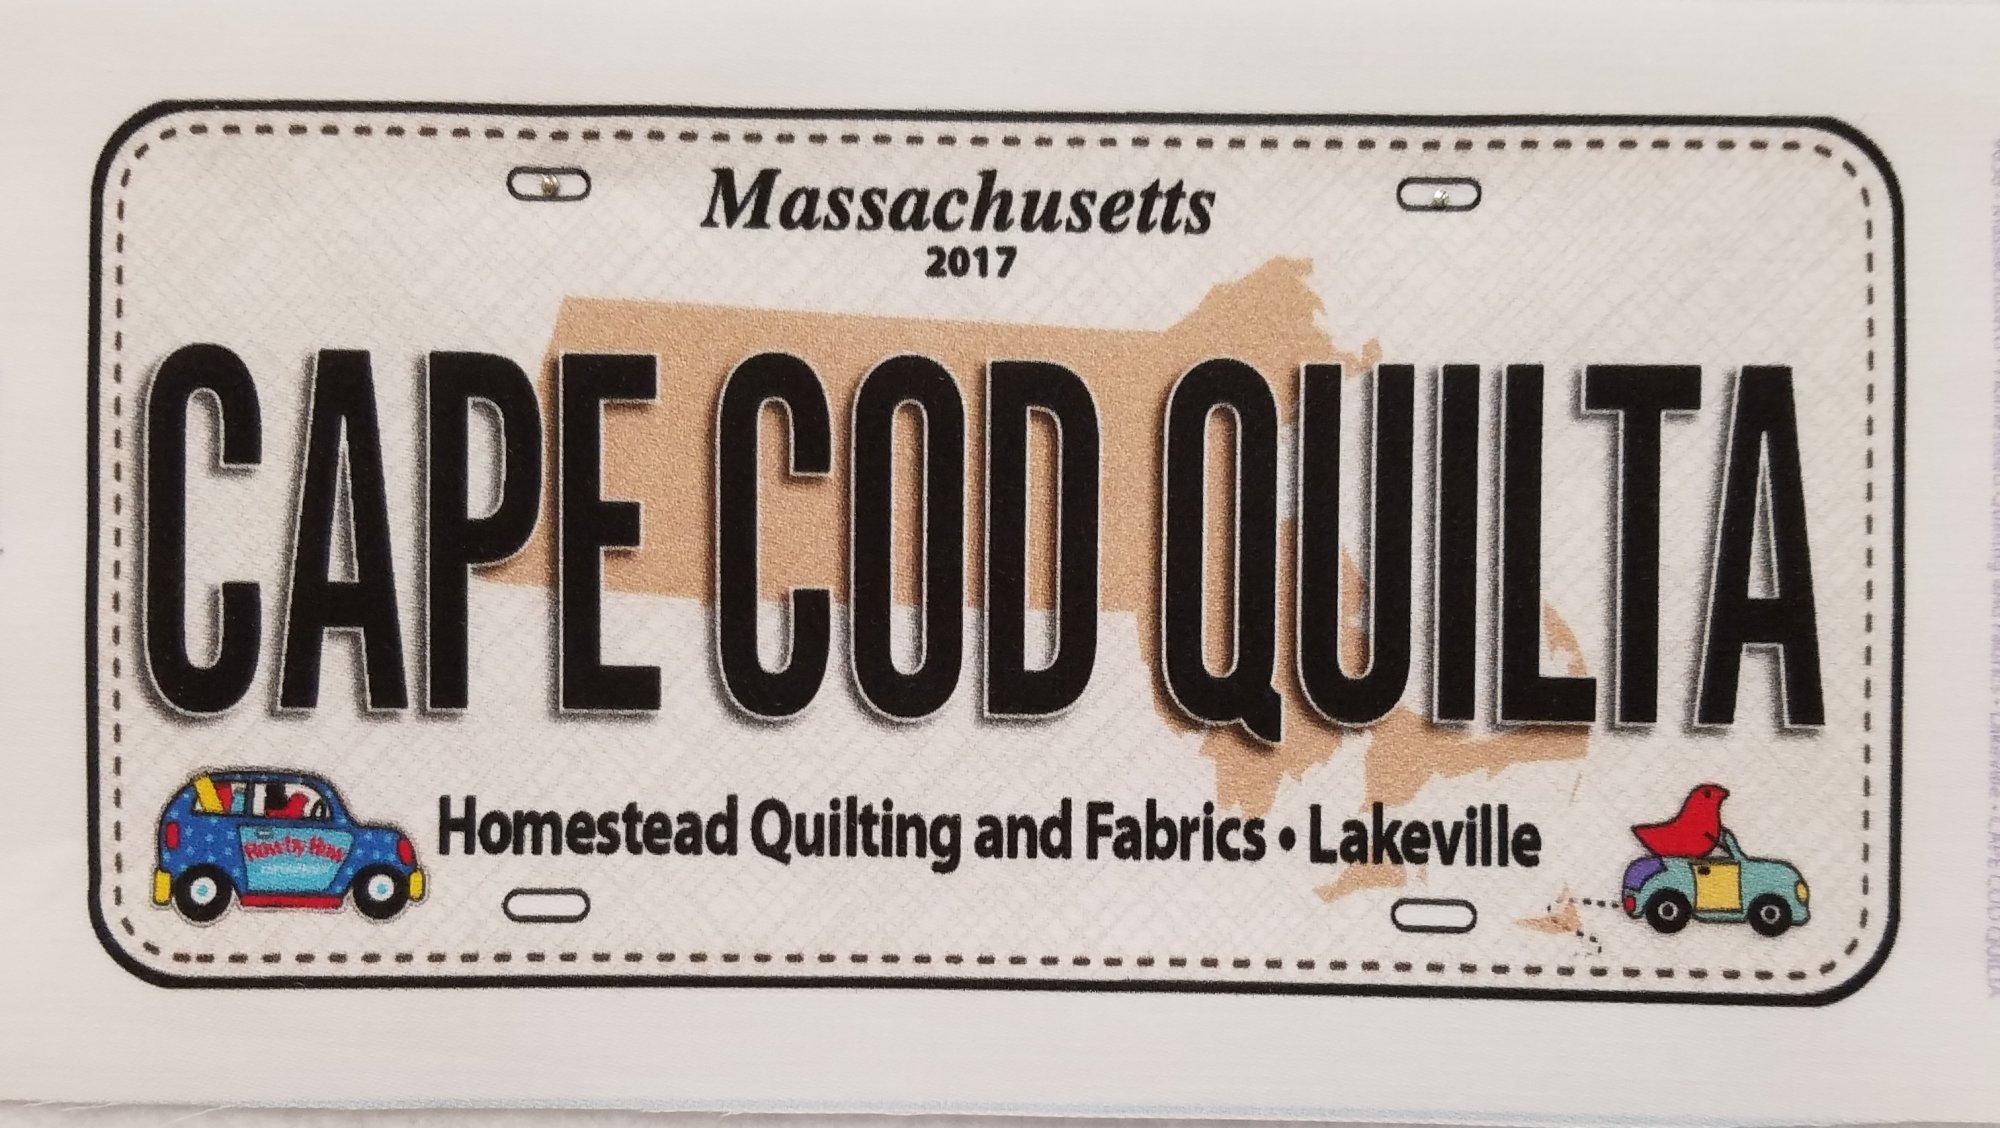 Row by Row 2017 -  License Plates CAPE COD QUILTA